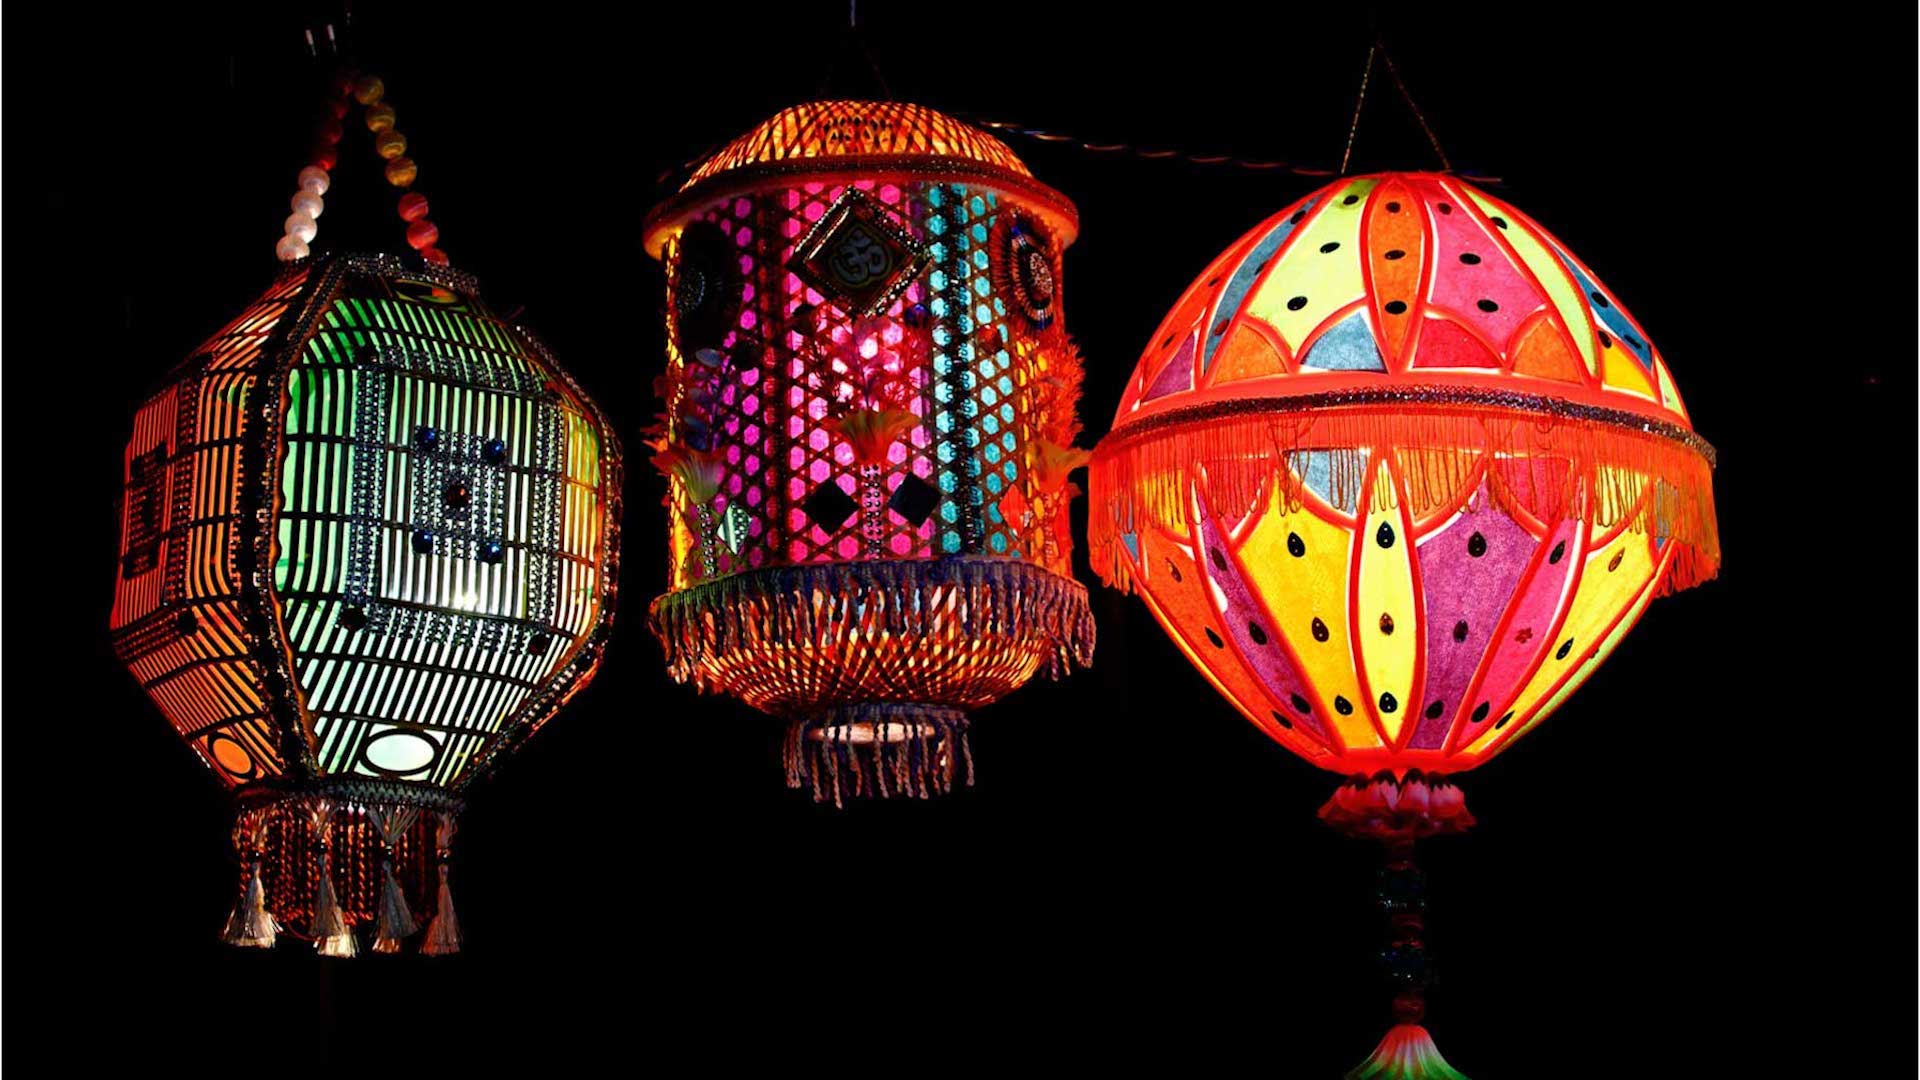 Eco Friendly Night Light Diwali Festival Of Lights Celebrated Around The World